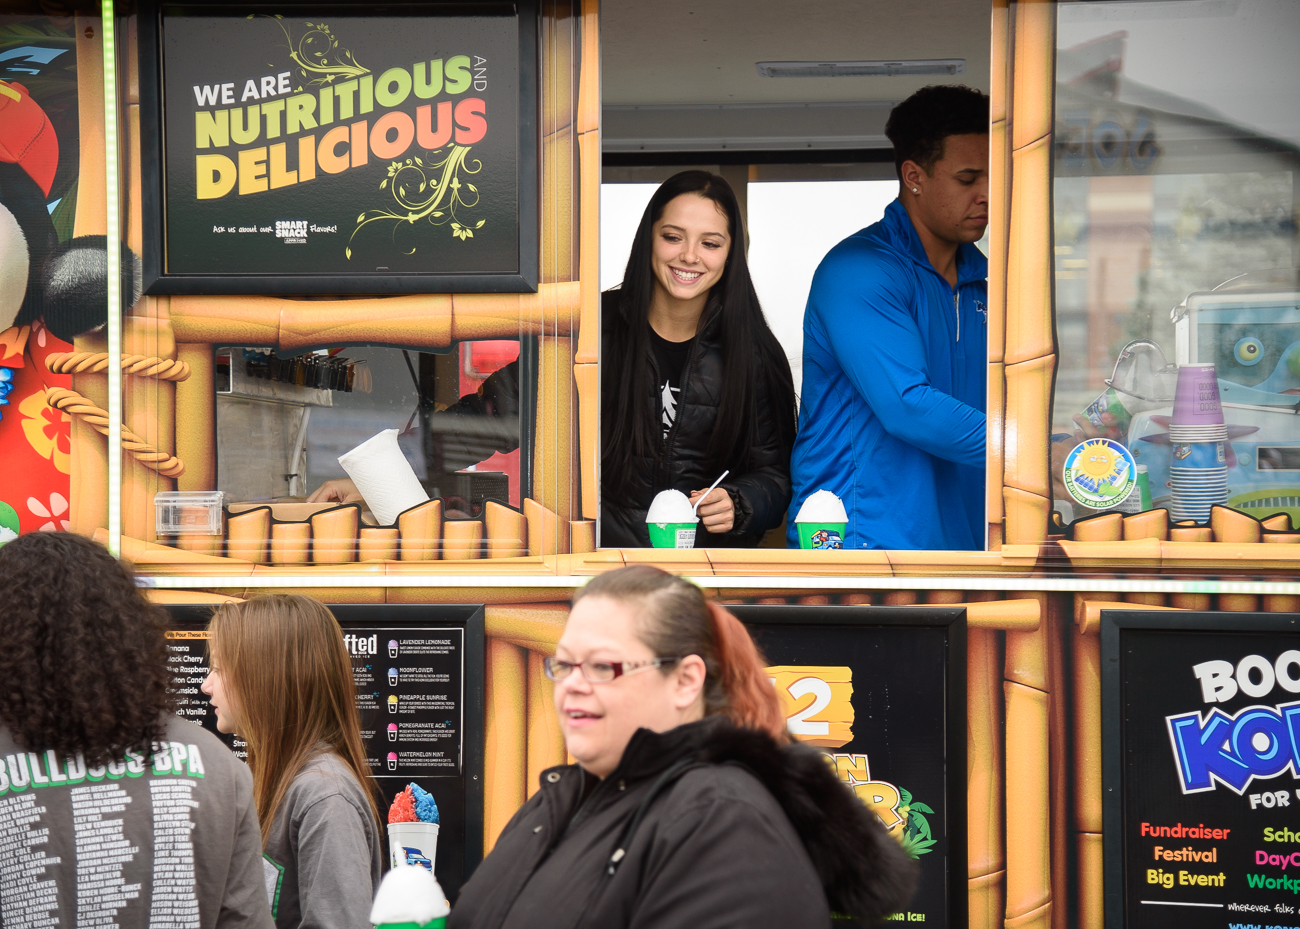 Kona Ice's truck served flavored ice at the event. / Image: Phil Armstrong // Published: 2.1.20